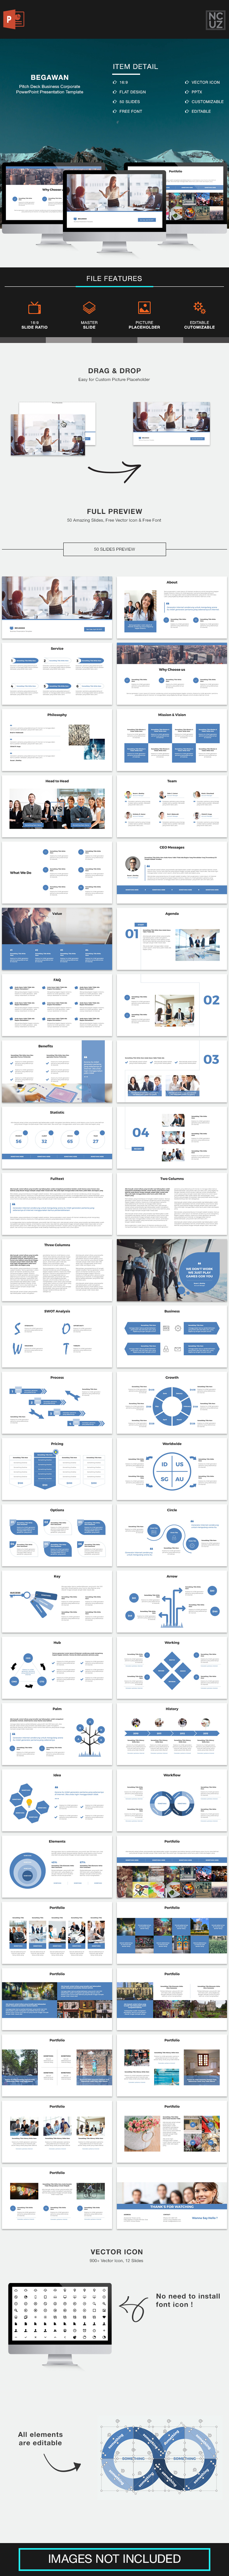 Begawan Pitch Deck PowerPoint Template - Pitch Deck PowerPoint Templates